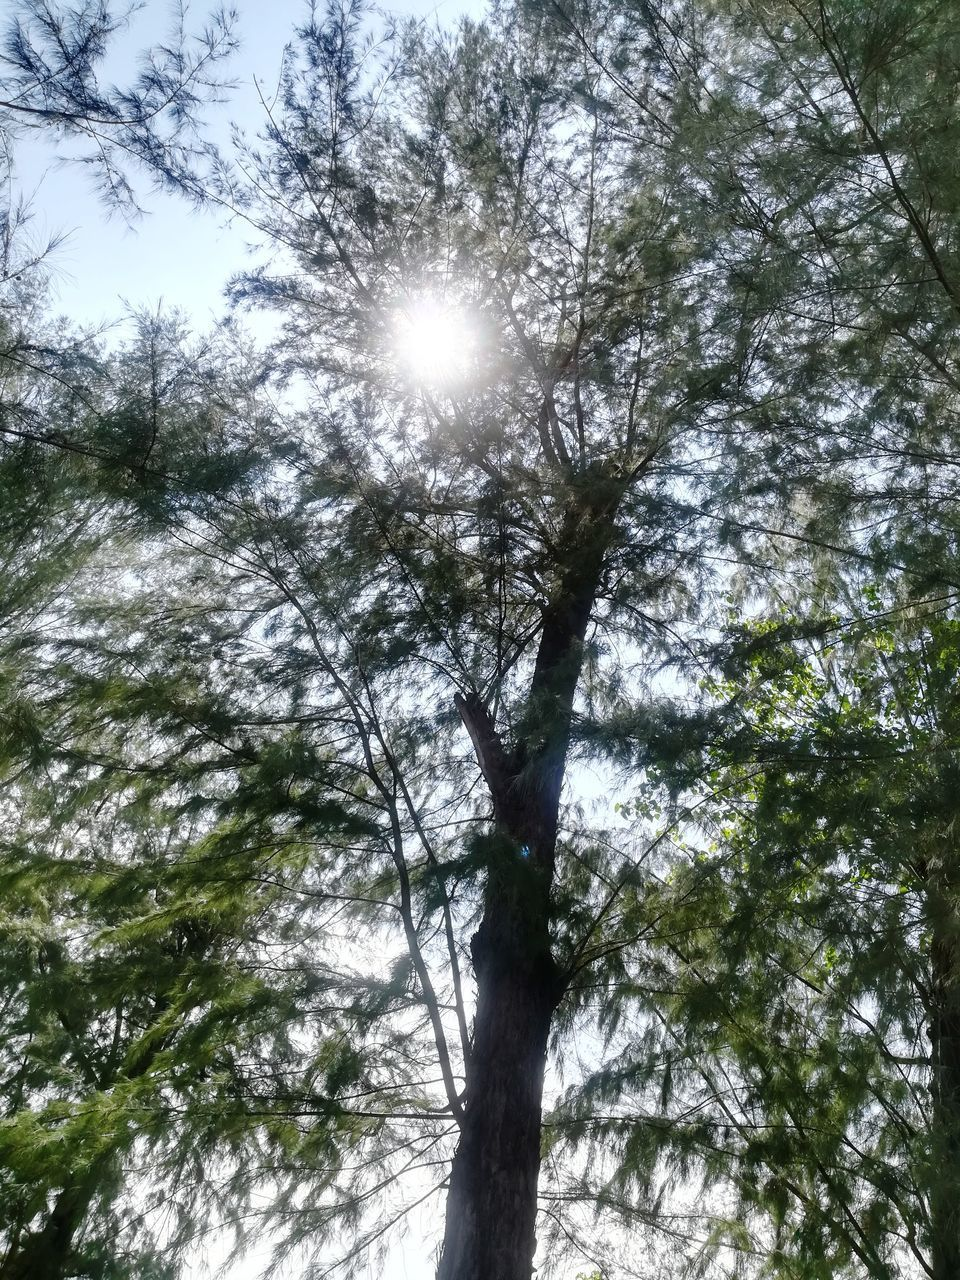 low angle view, tree, nature, sunlight, outdoors, day, forest, tree trunk, no people, scenics, beauty in nature, tranquility, growth, branch, sun, sky